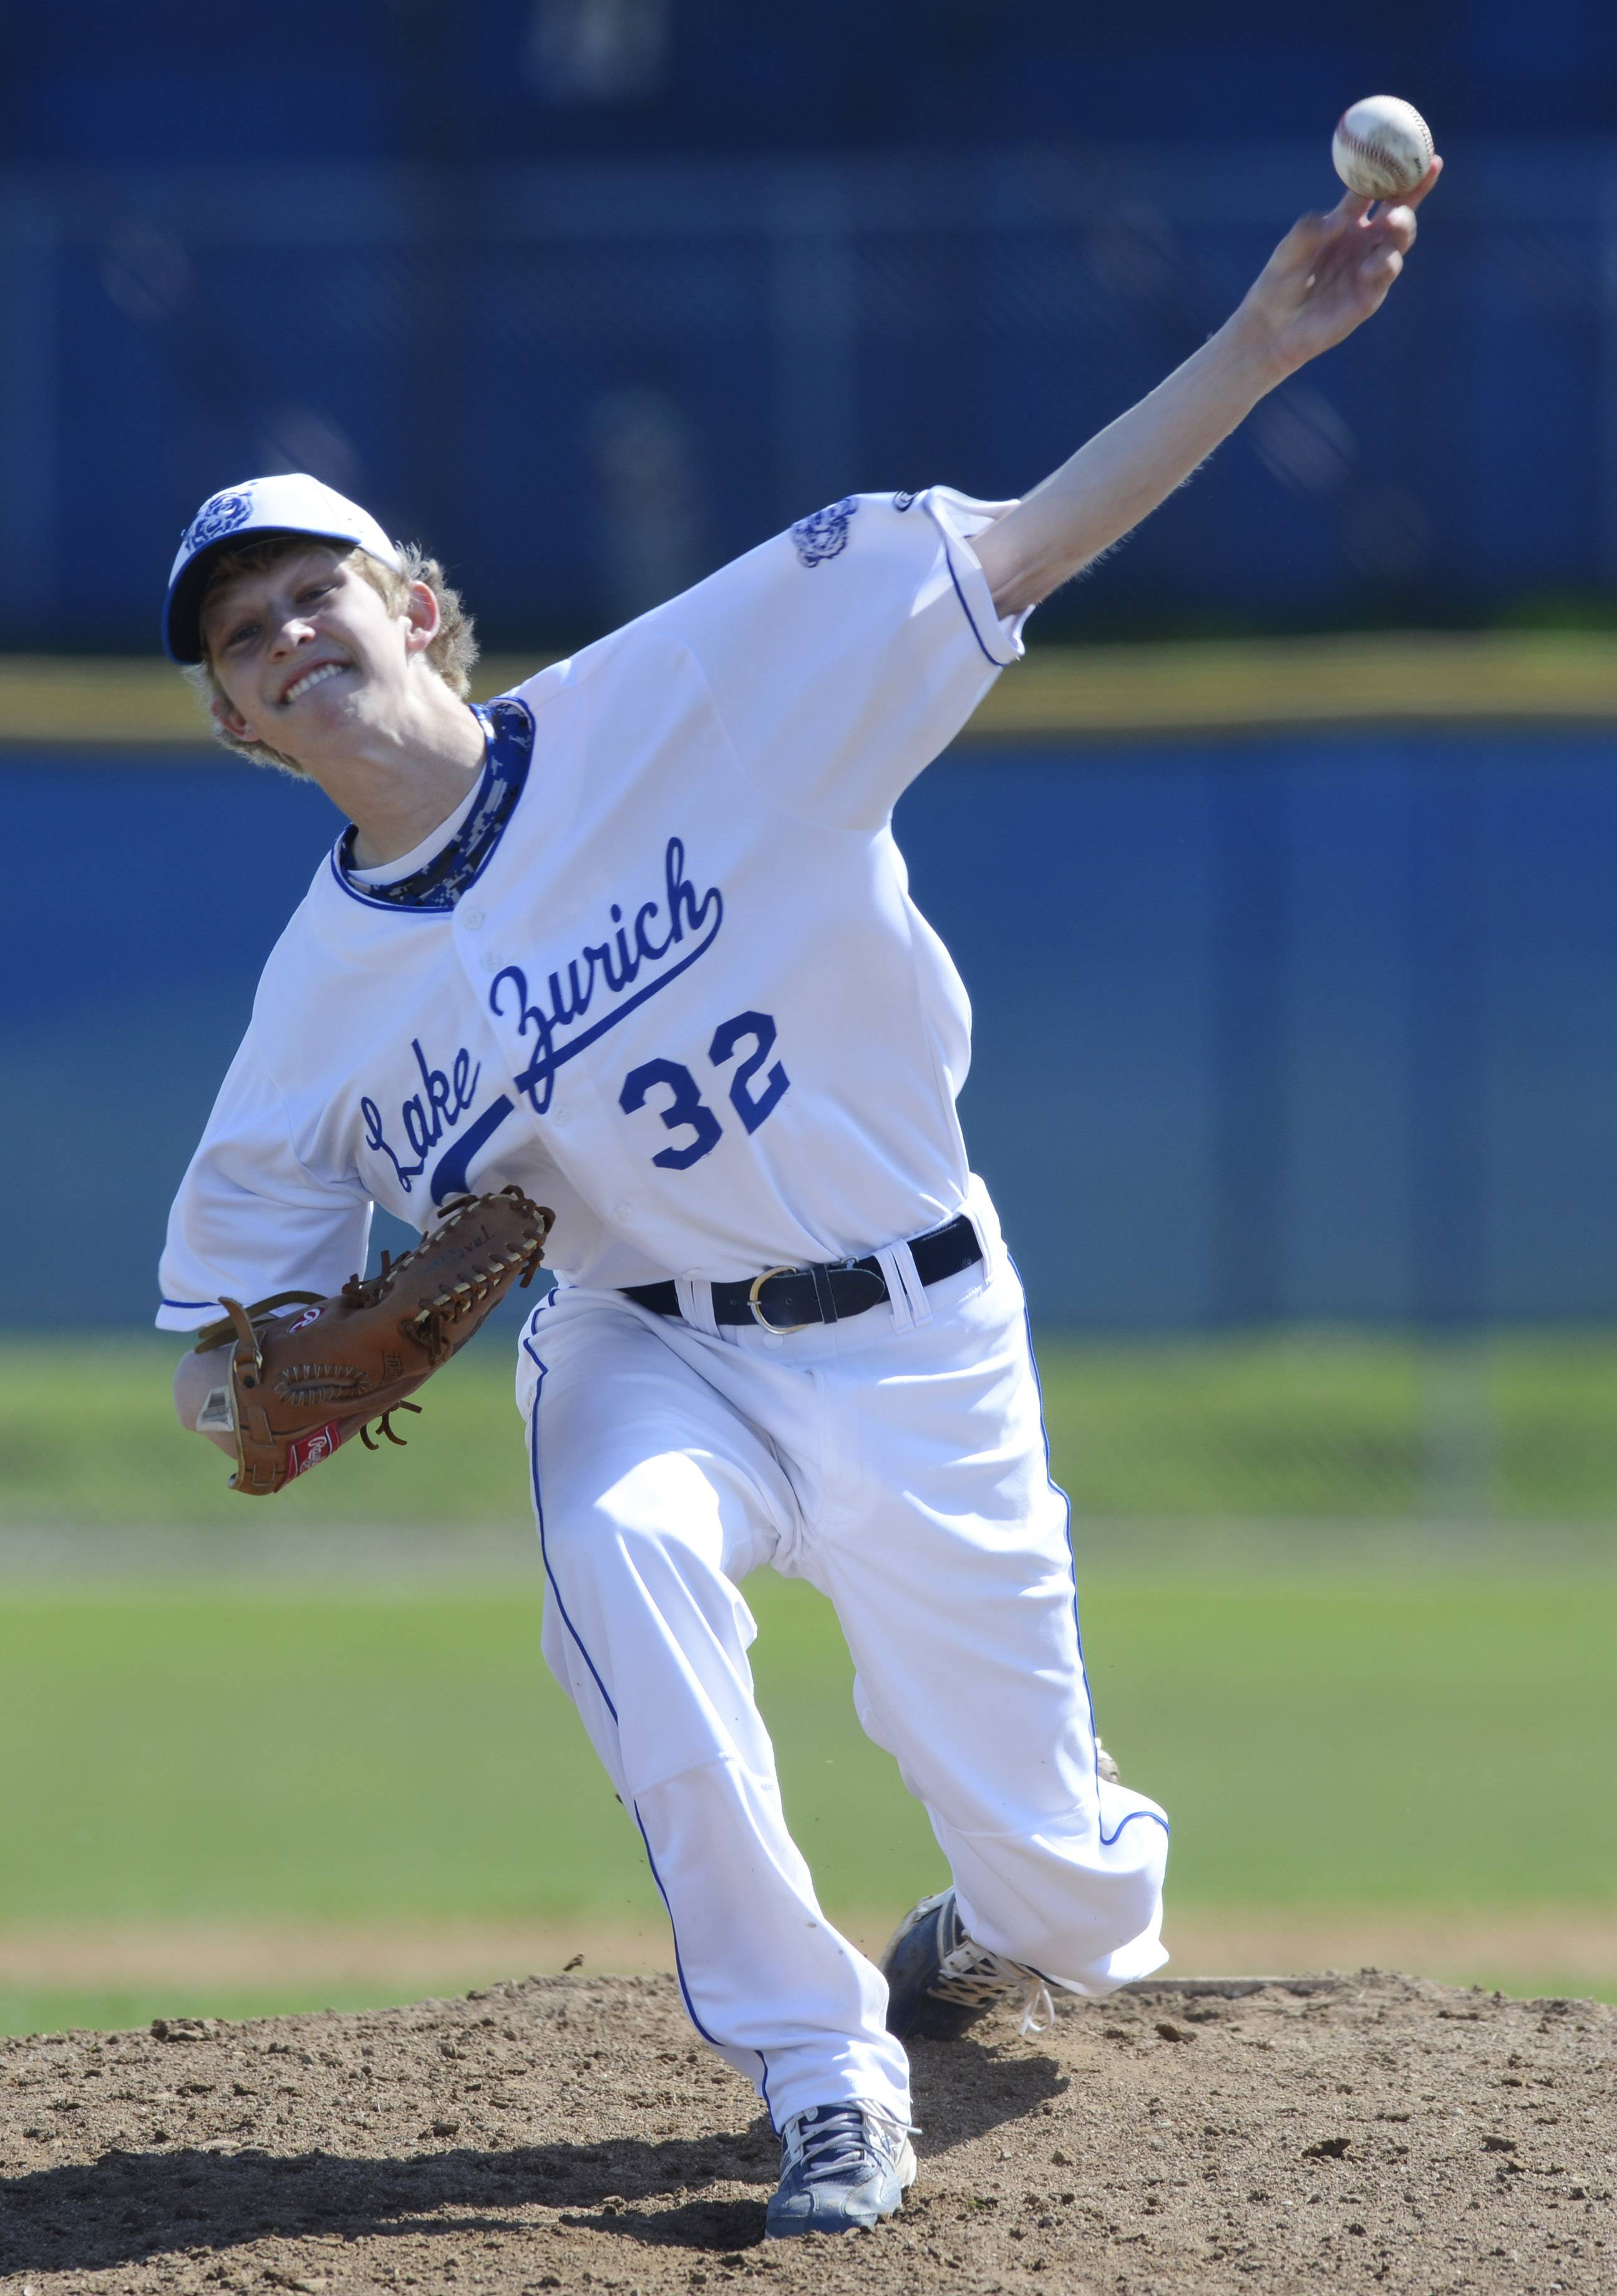 Lake Zurich pitcher Derek Kornfeind delivers to the plate during Saturday's game against Stevenson.